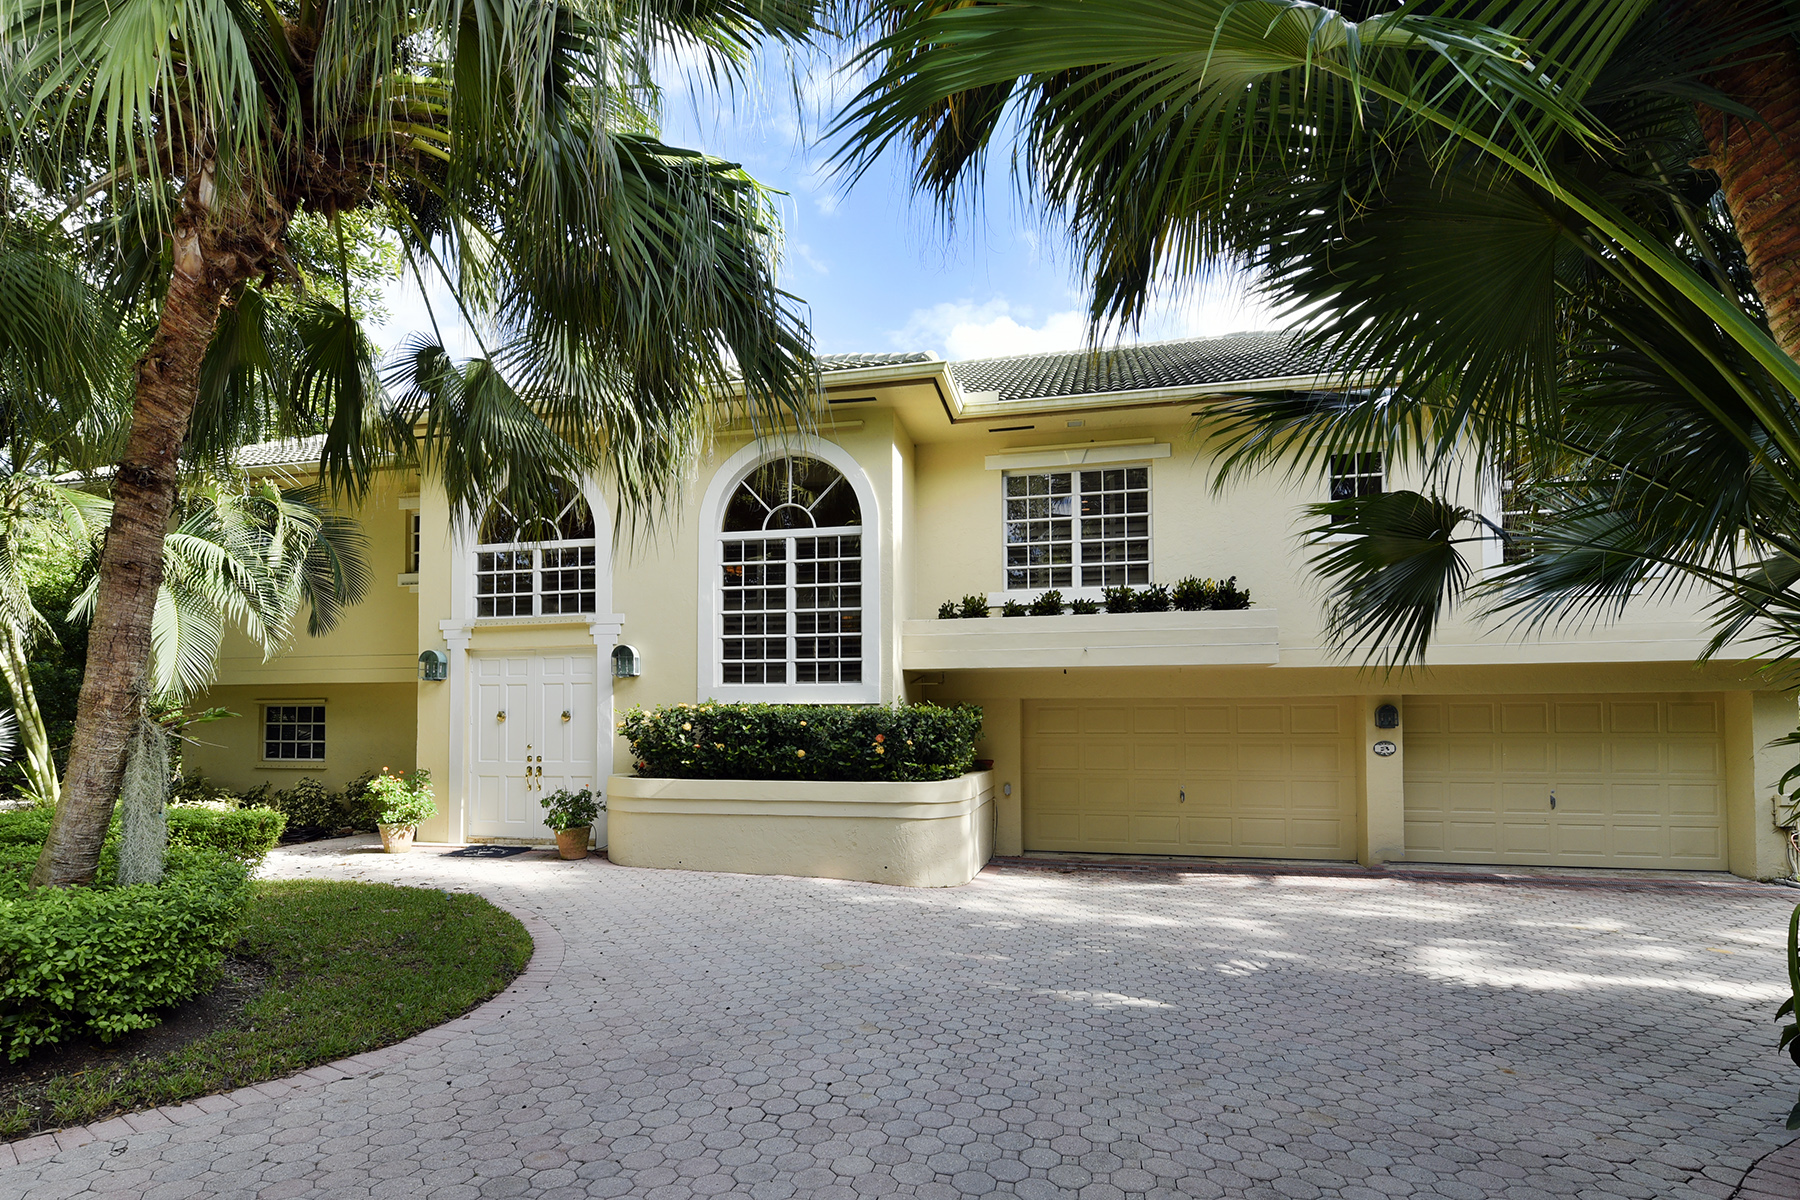 Moradia para Venda às Charming Golf Course Home at Ocean Reef 3 Bayberry Lane Ocean Reef Community, Key Largo, Florida, 33037 Estados Unidos